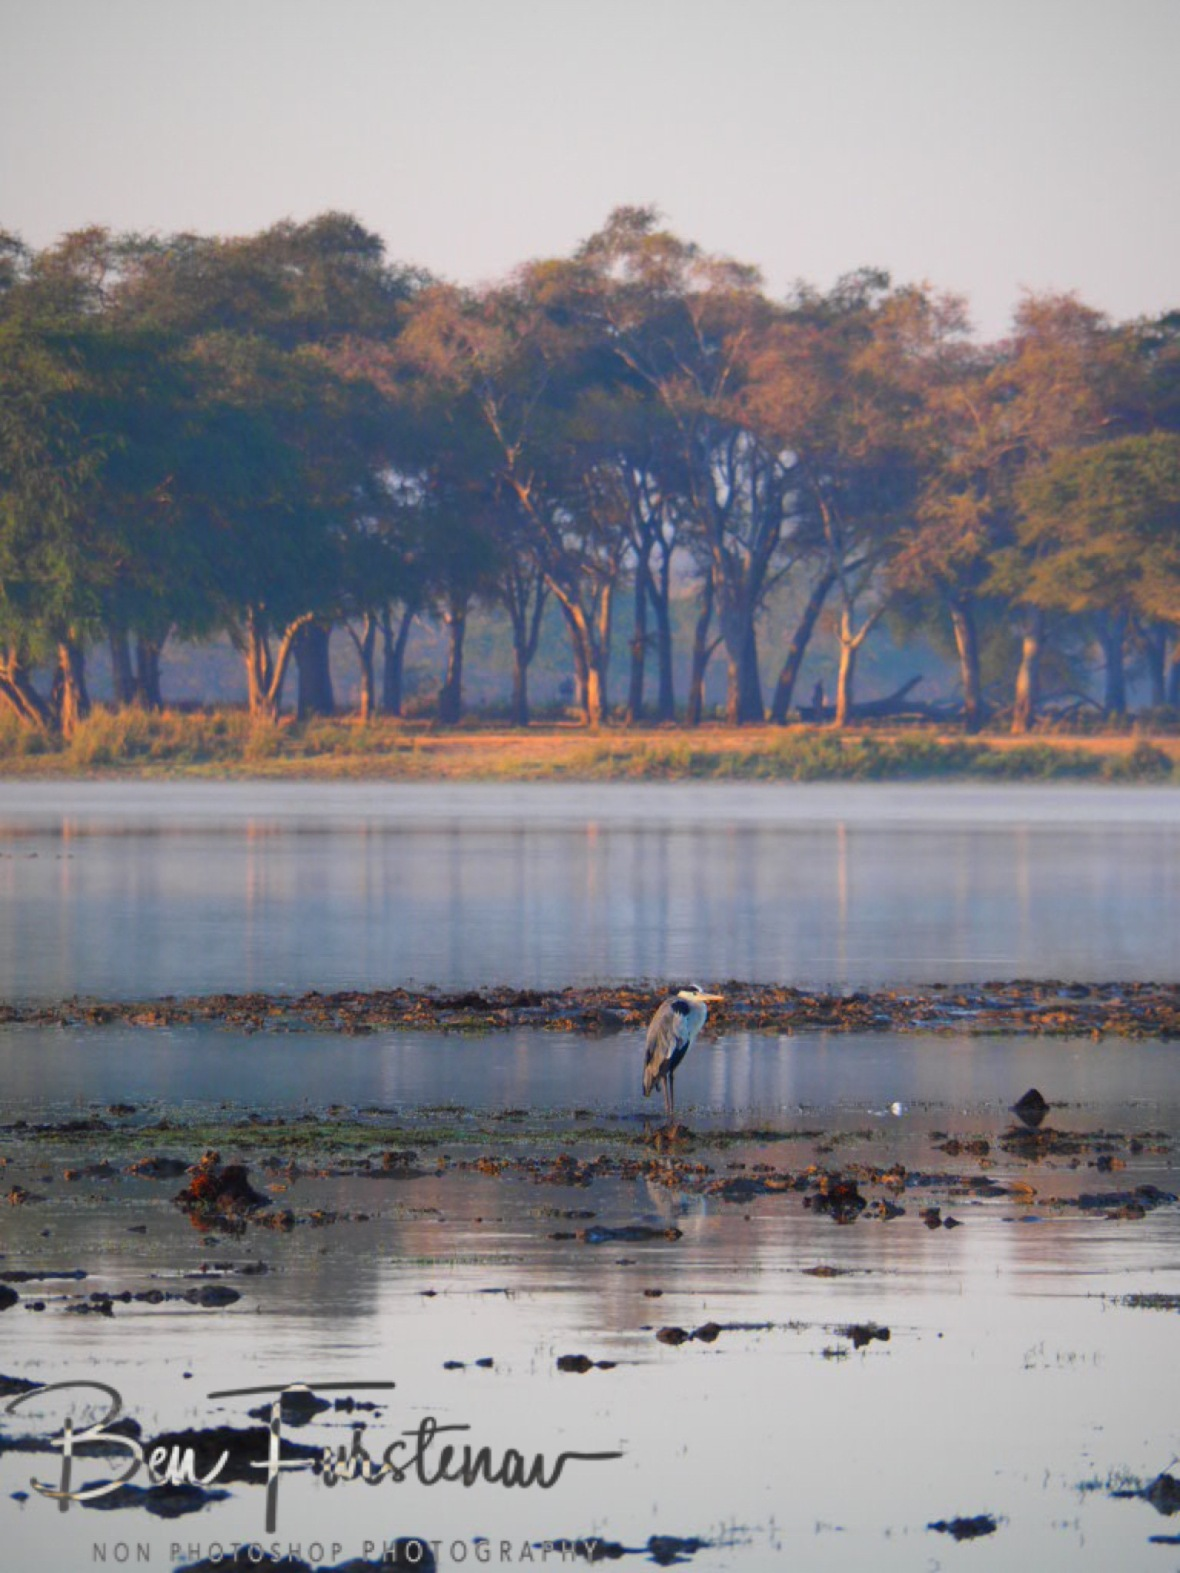 A heron enjoys calm waters at Vwaza Marsh National Reserve, Malawi